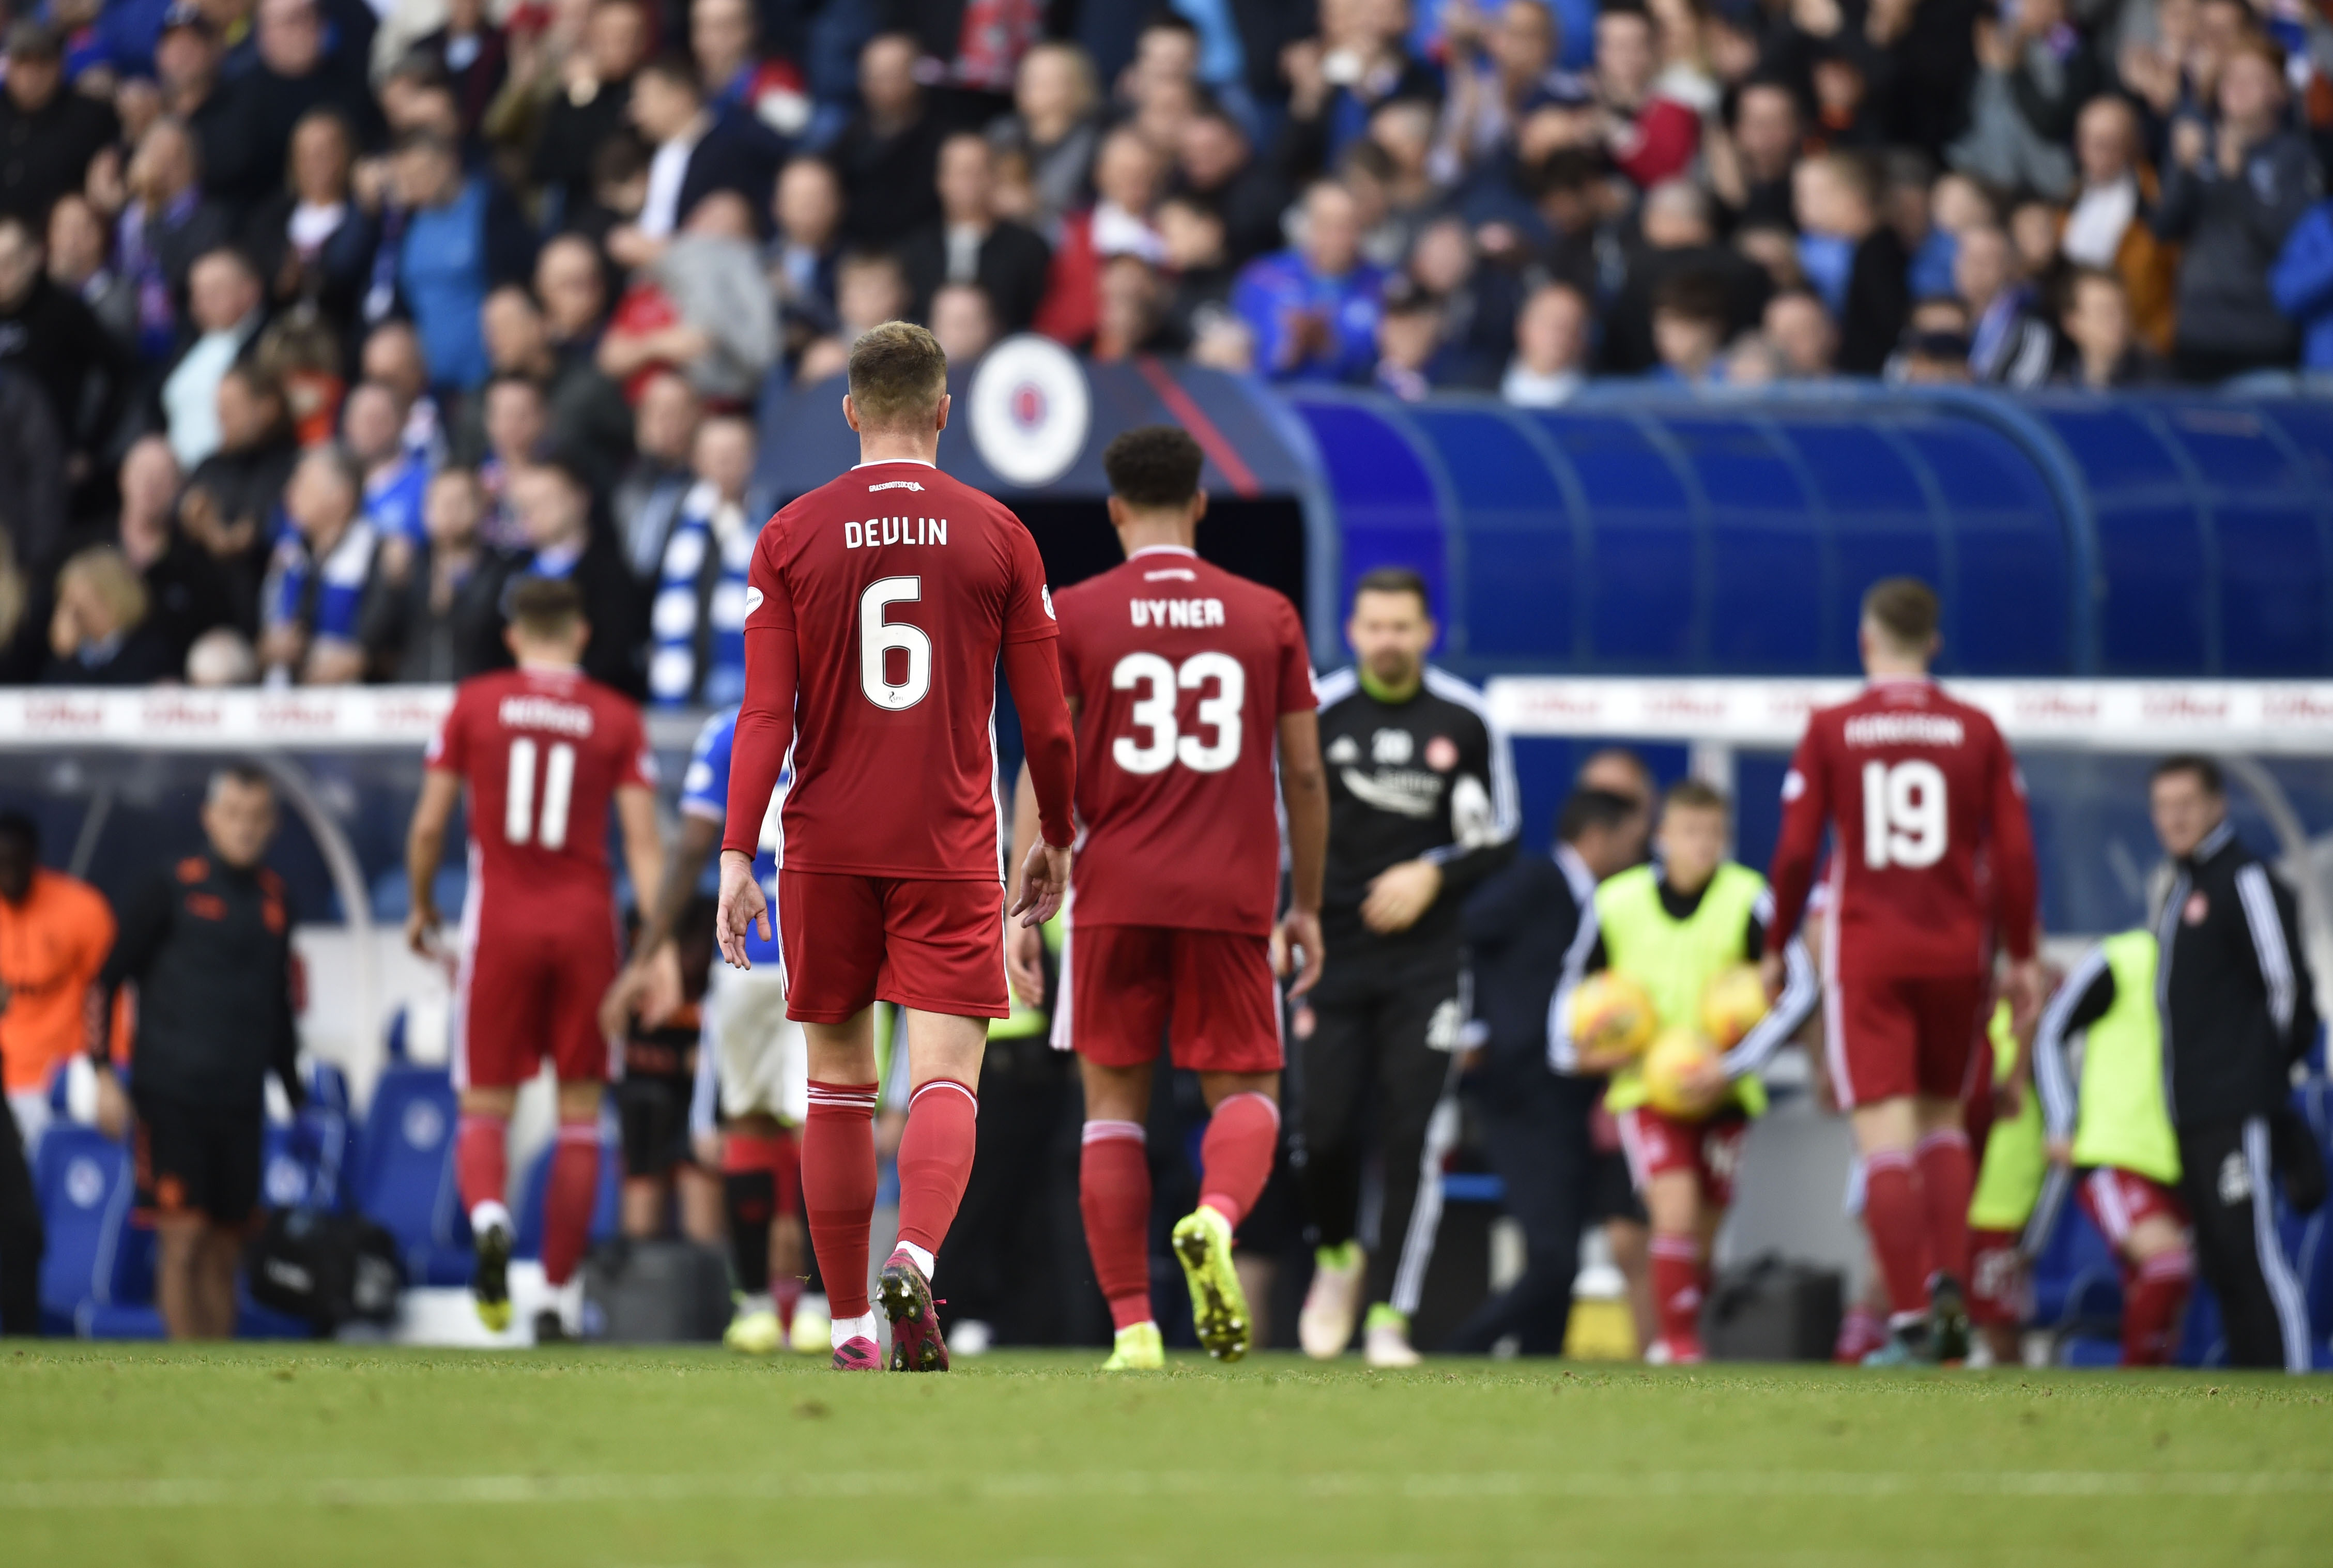 McInnes felt his side were lacking in experience and personality against Rangers.